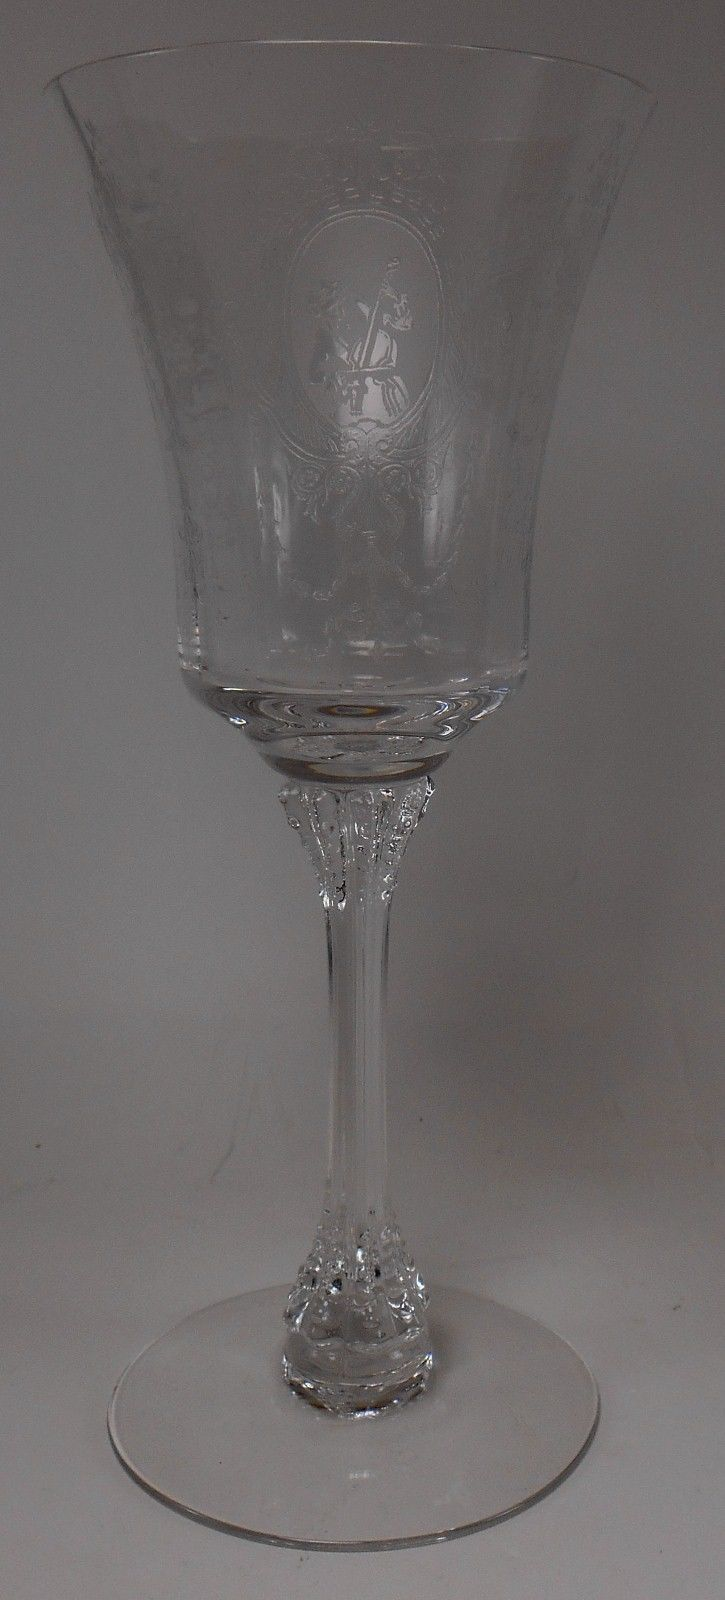 HEISEY crystal MINUET 5010 pattern Water Goblet/Glass @ 8